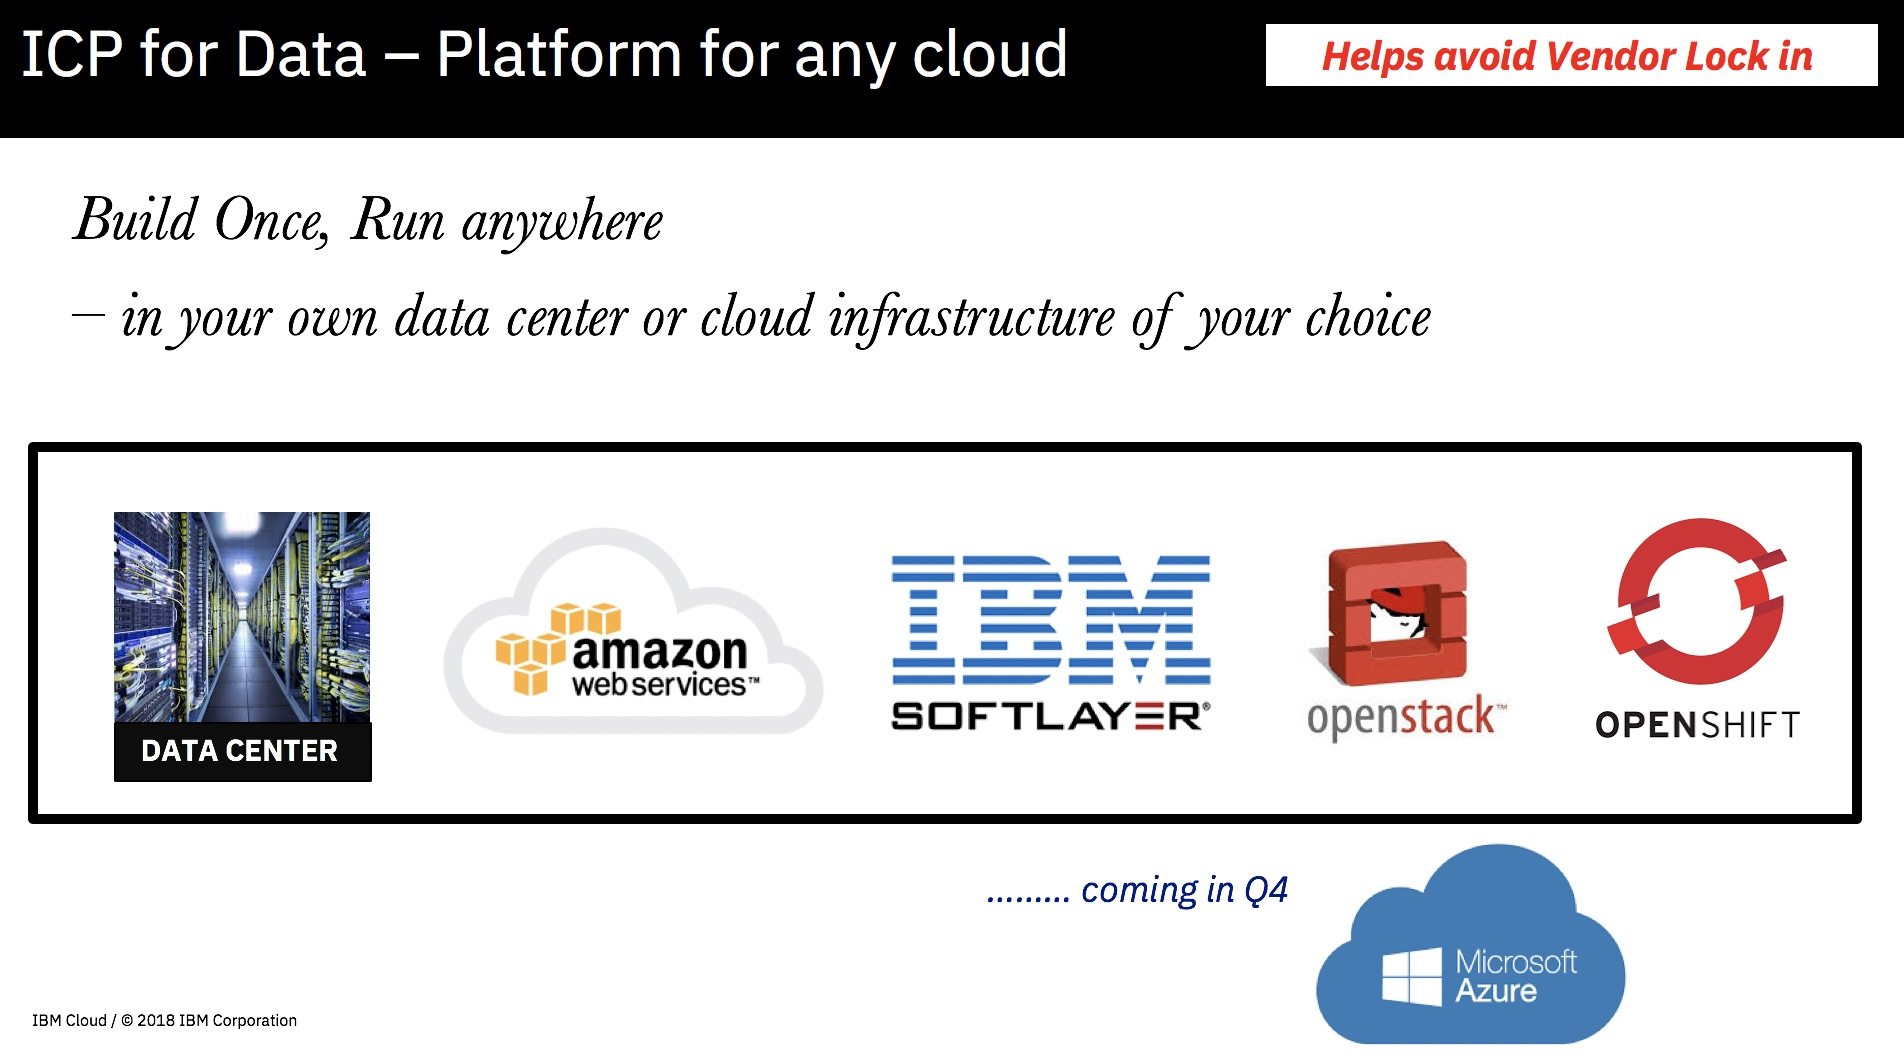 ICP for Data - Platform for any Cloud